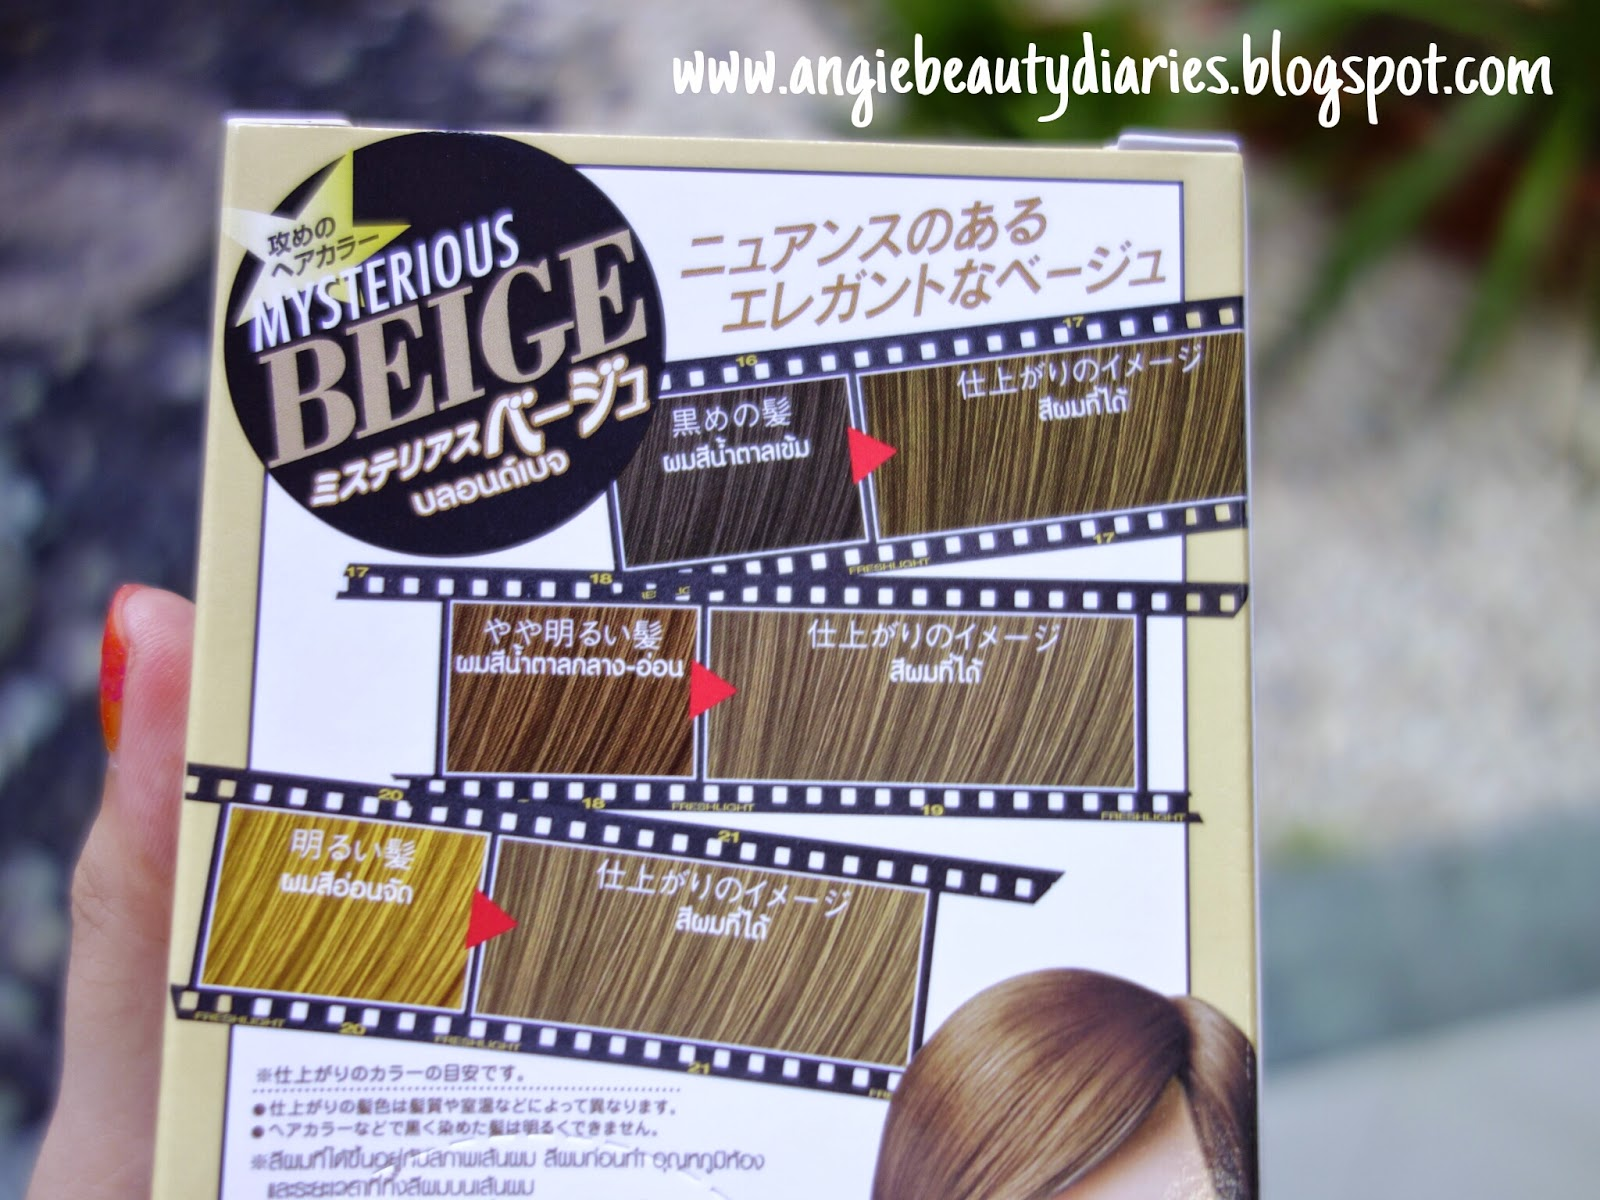 Angie beauty diaries review schwarzkopf fresh light hair the left one is the instruction how to use the hair coloring which written in thai language and the right one is the color chart nvjuhfo Images